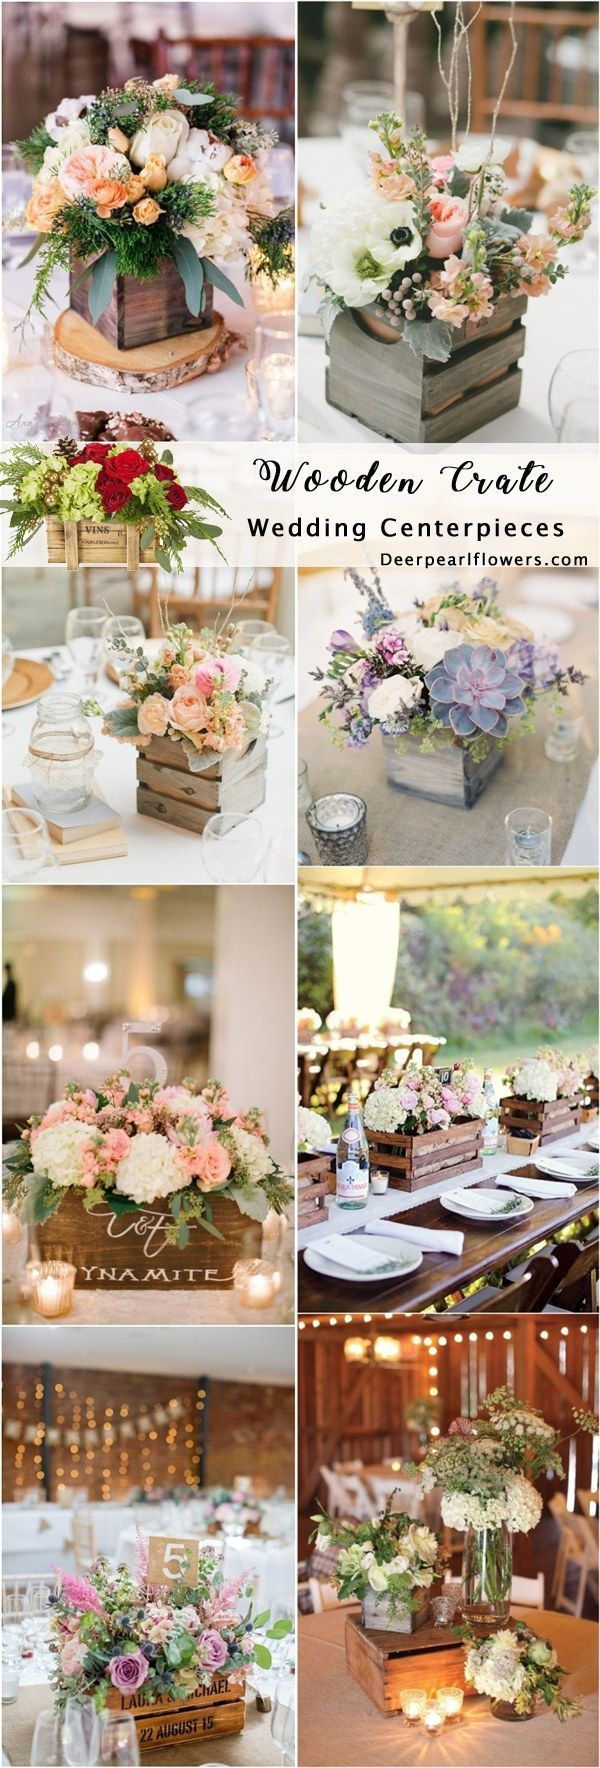 best wedding receptions images on pinterest wedding reception